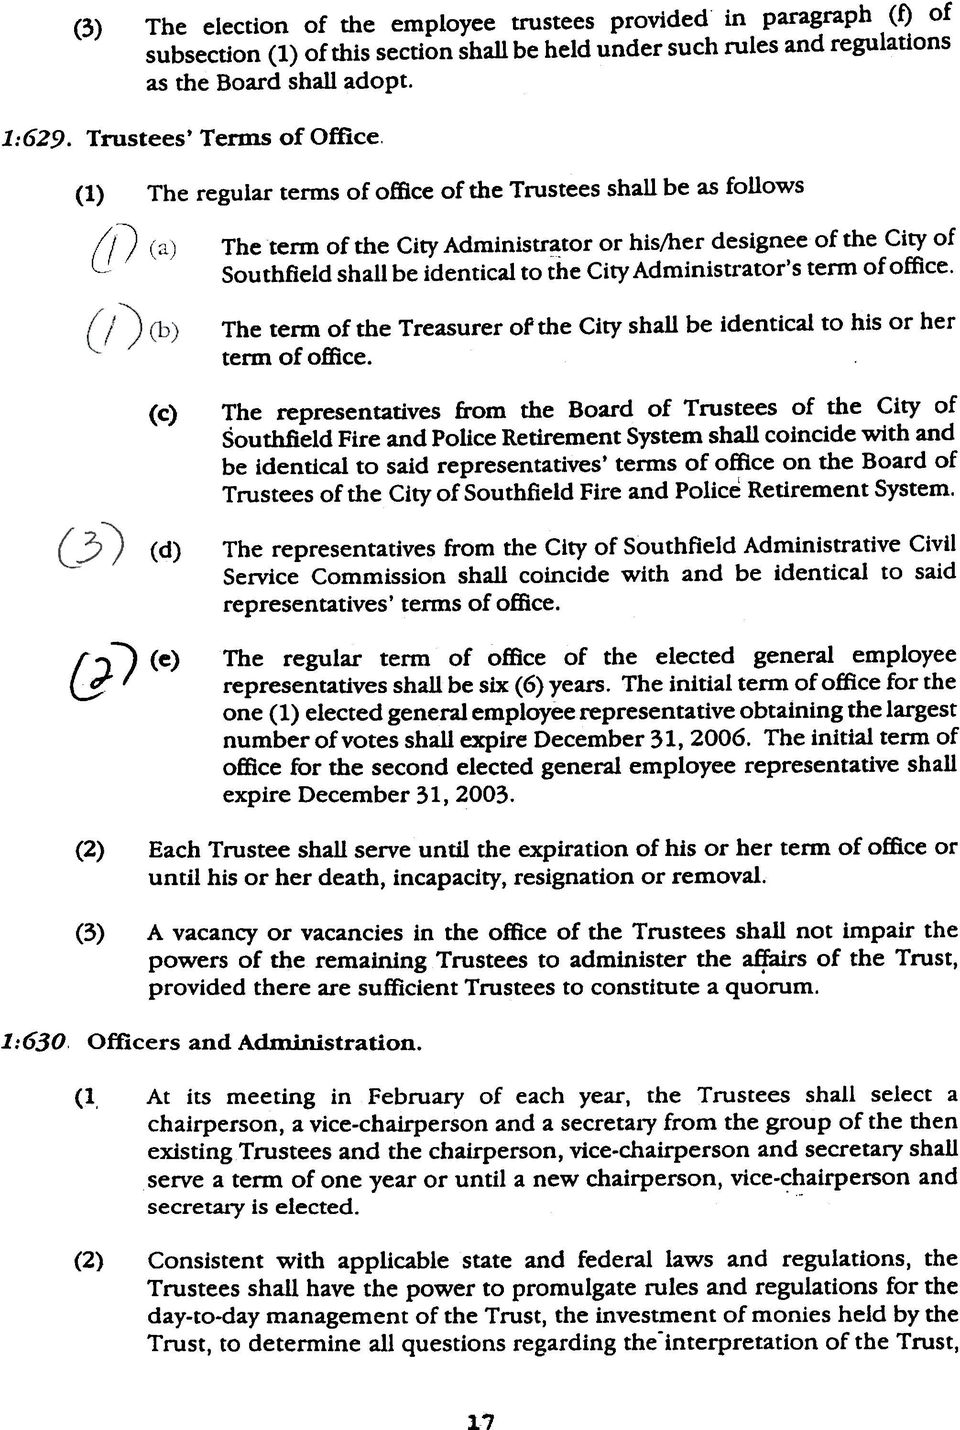 (1) The regular terms of office of the Trustees shall be as follows The tend of the City Adminis~tor or his;her designee of the City of Southfield shall be identical to the City Administrator's tenn